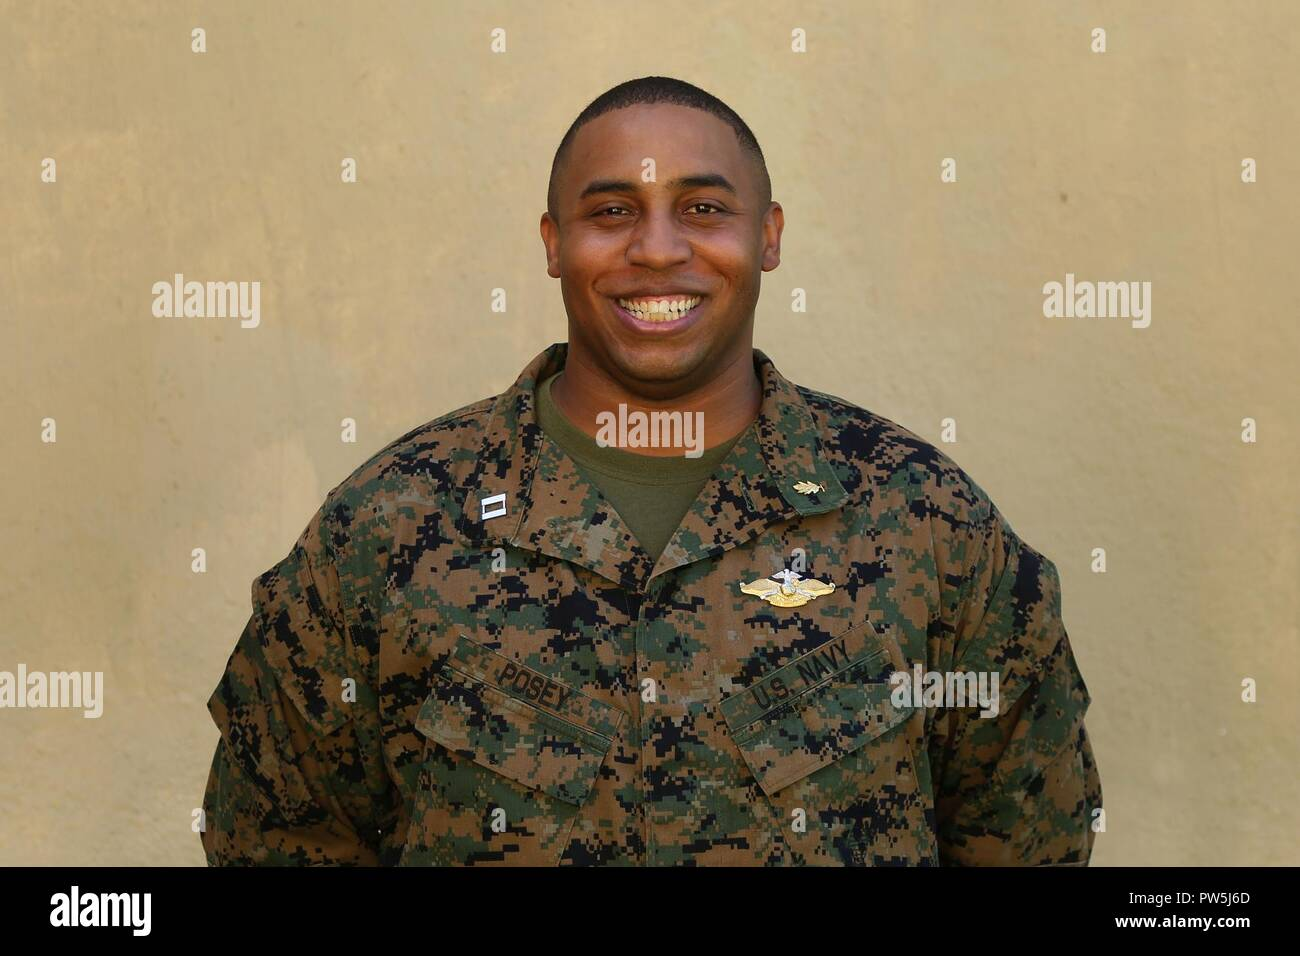 U.S. Navy LT Raymond Posey, an Atlanta, Georgia native, is the operations officer of the Sri Lanka Health Engagement 17 team, held from Sept. 9-23, 2017 at Naval Base Welisara, Sri Lanka. Posey enlisted into the U.S. Navy in 1998. As an enlisted Sailor, he obtained his bachelor's degree from Hawaii Pacific University and his master's degree from Cleveland State University and was commissioned in 2009. He is currently the Health Service Support Officer for 3d Marine Logistics Group, III Marine Expeditionary Force in Okinawa, Japan. - Stock Image